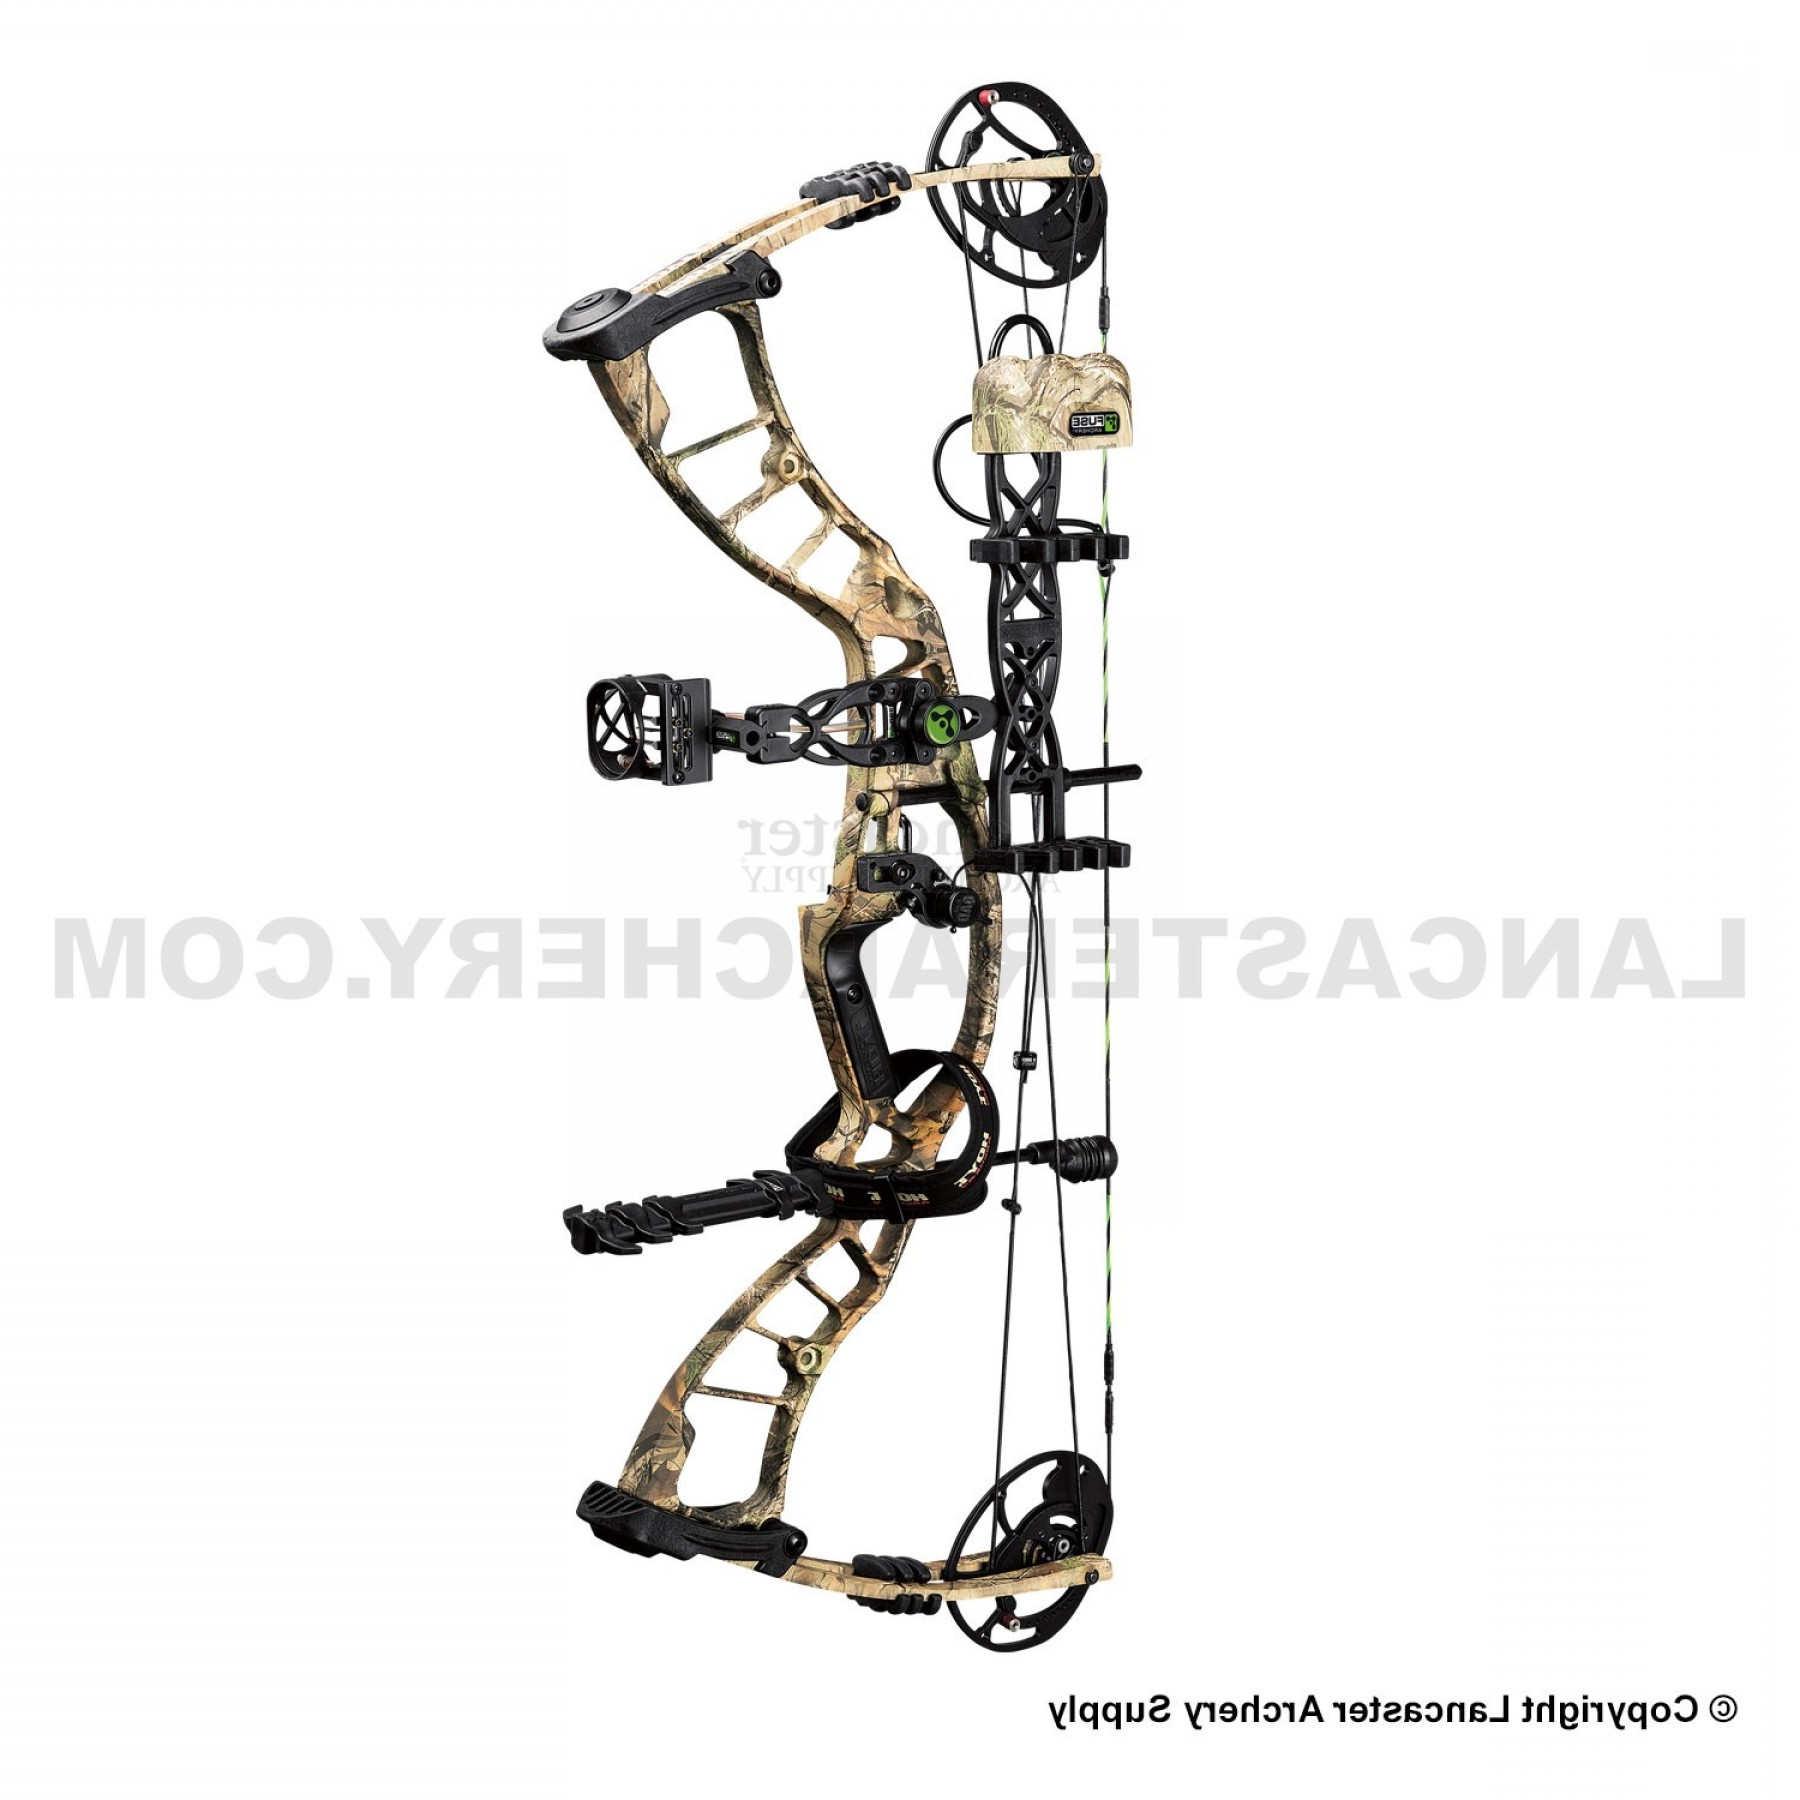 Hoyt Vector Series: Hoyt Powermax Compound Bow Hunting Colors